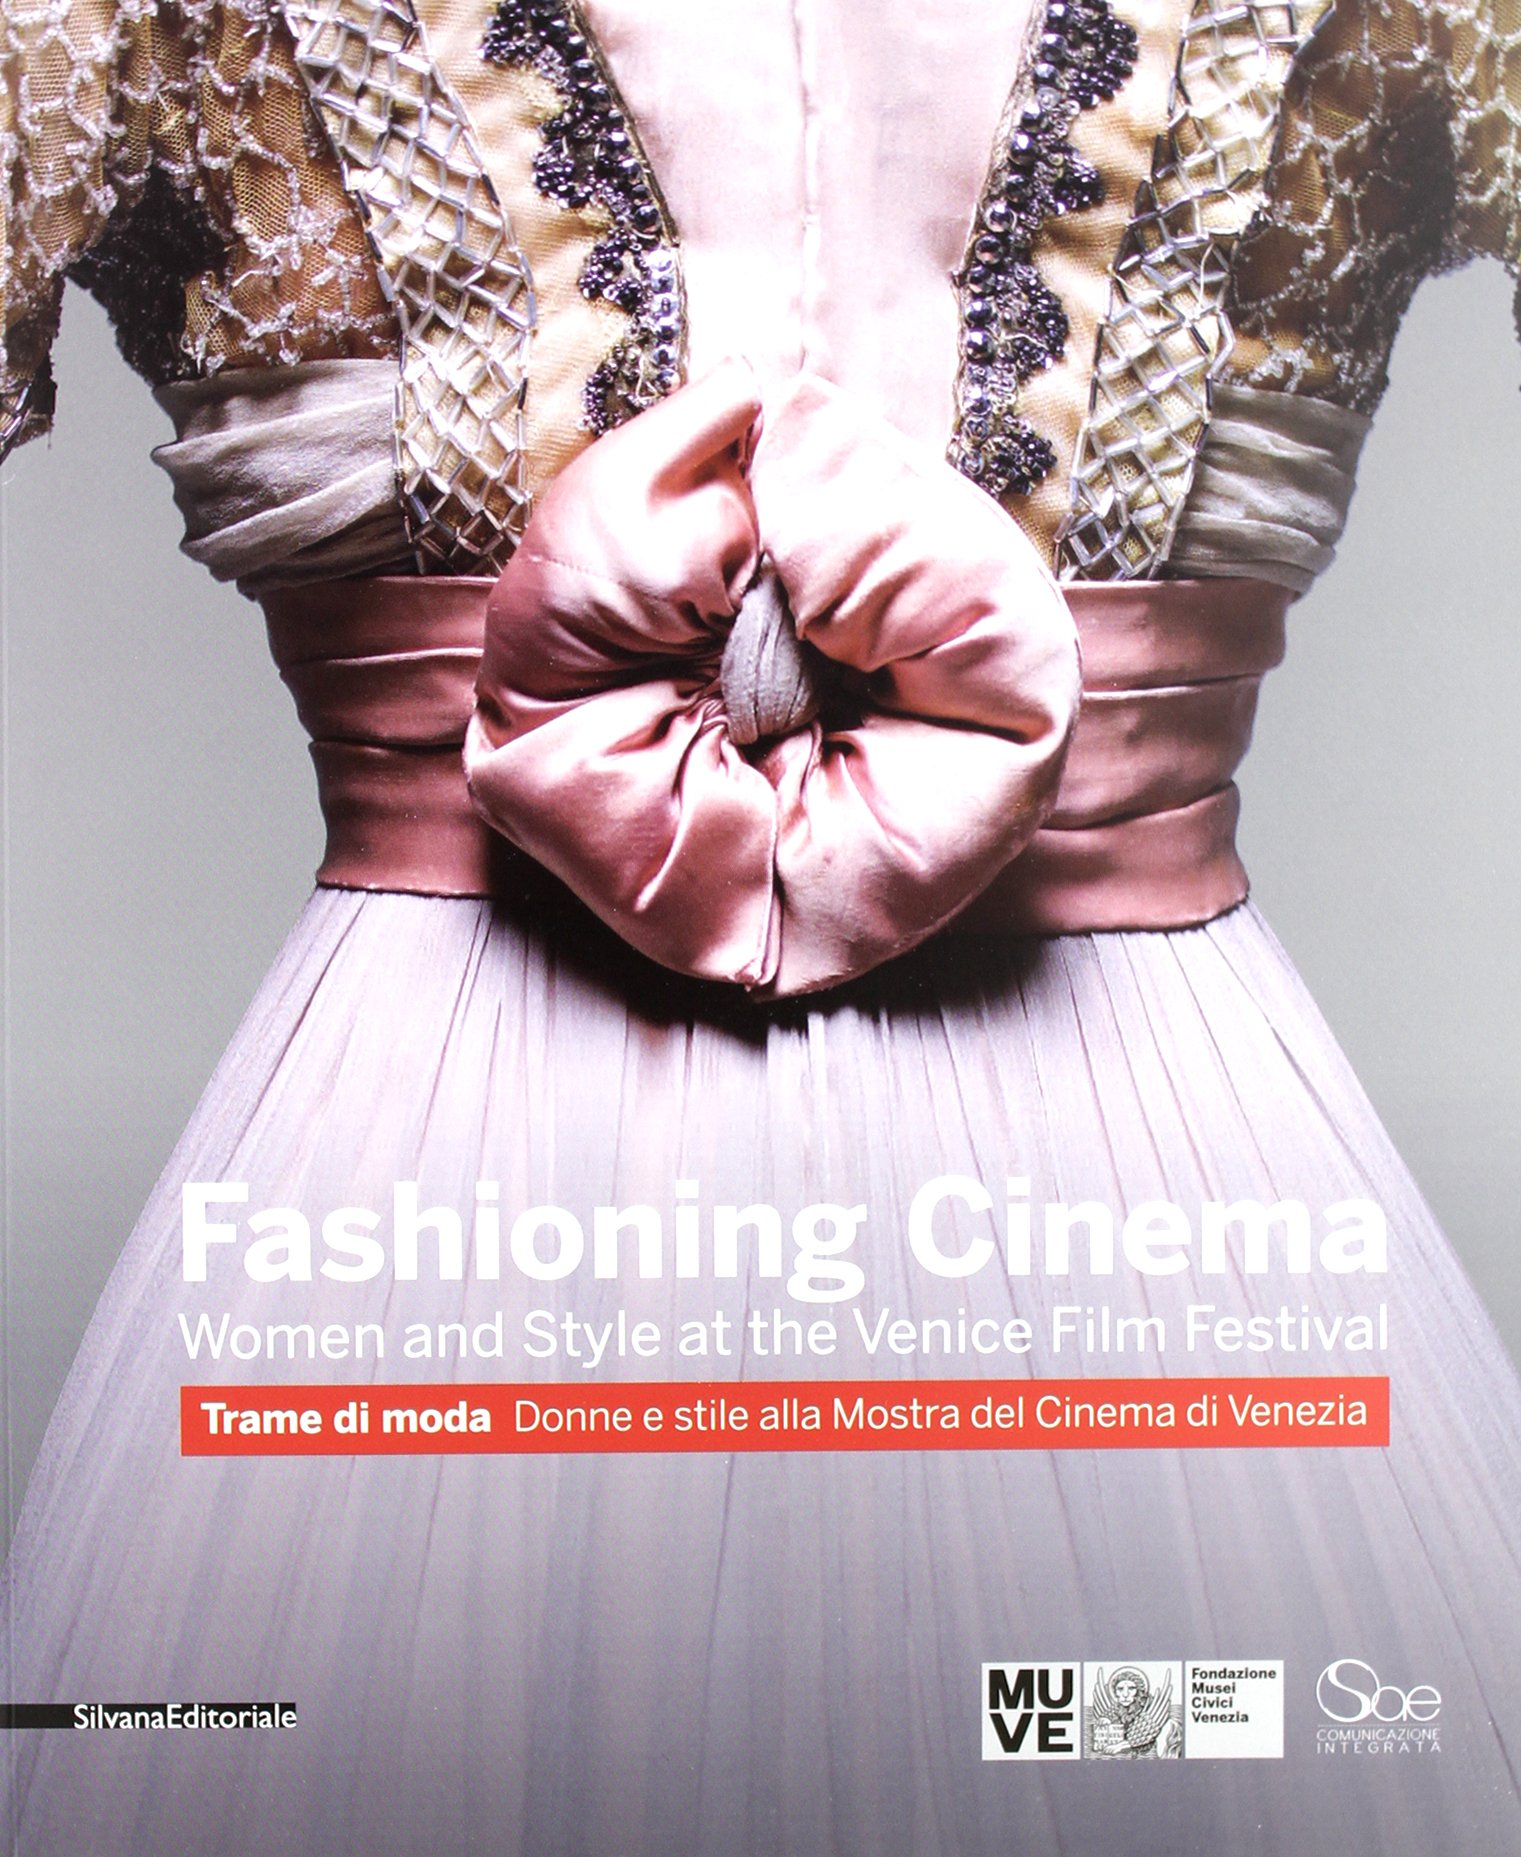 Fashioning cinema. Women and style at the Venice Film Festival-Trame di moda. Donne e Stile alla Mostra del Cinema di Venezia. Ediz. bilingue (Inglese) Copertina flessibile – 27 set 2012 F. Giacomotti A. Lai Silvana 8836624456